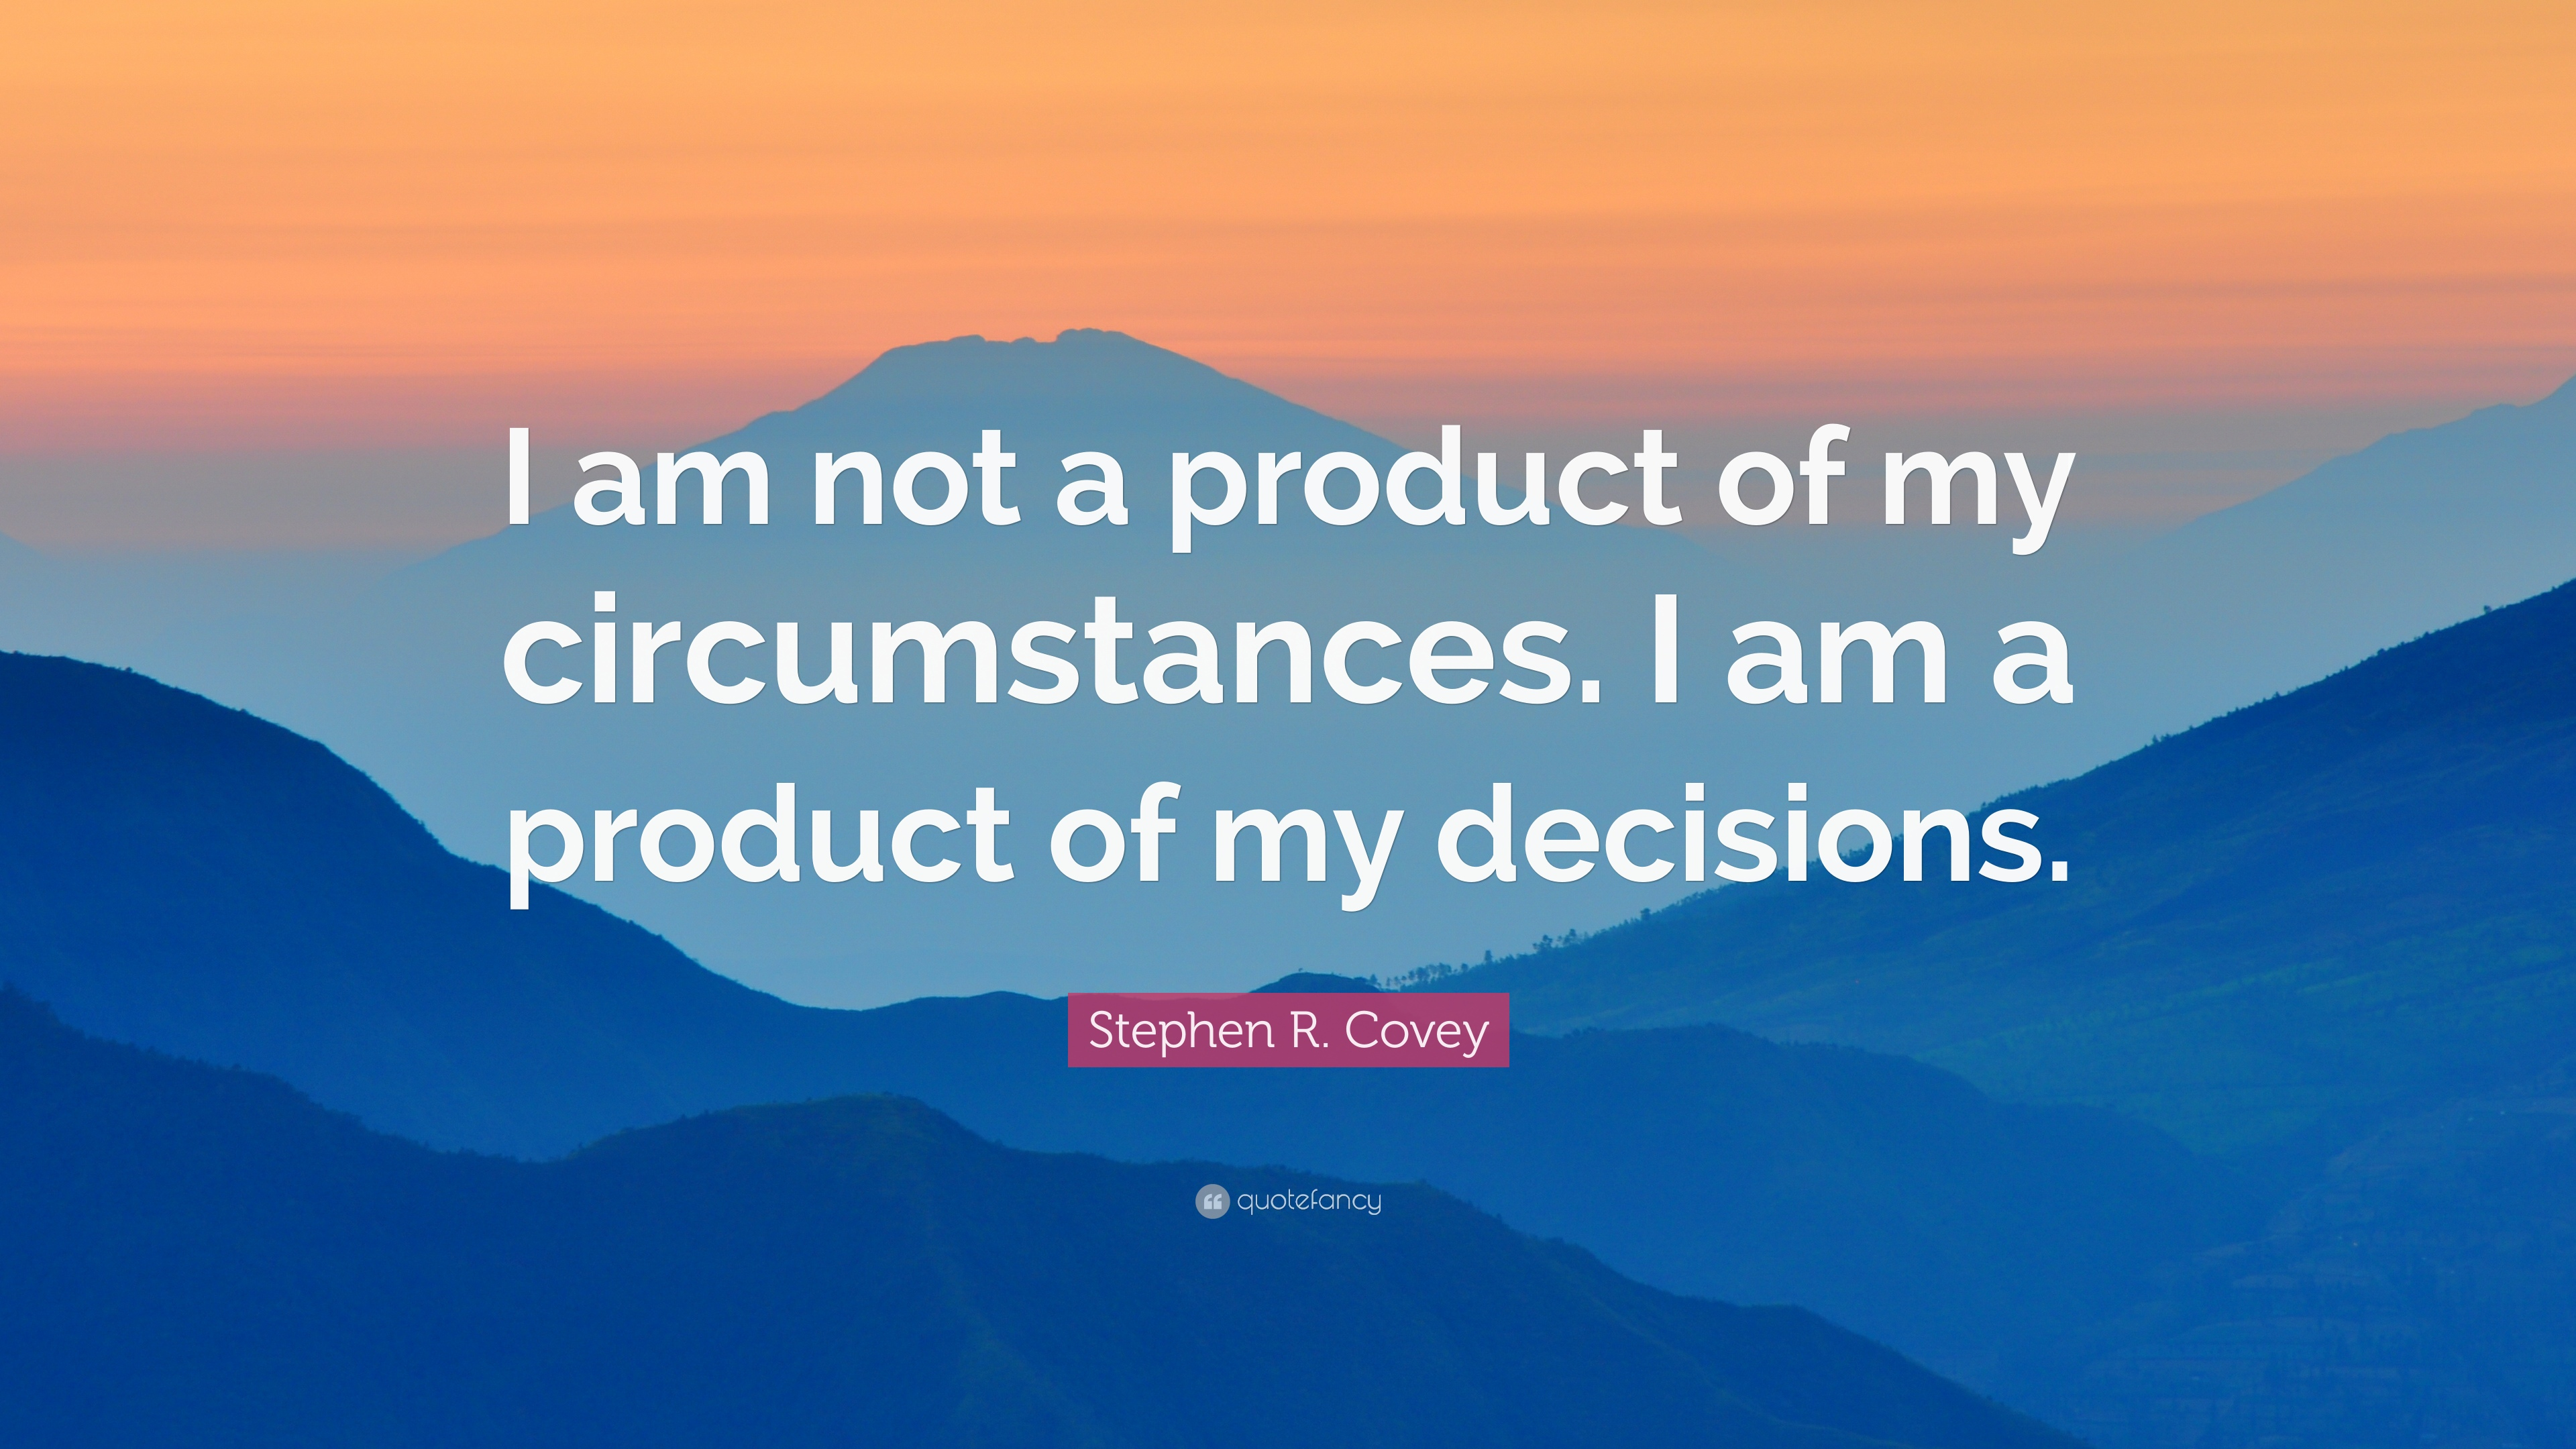 Elon Musk Quotes Wallpaper Stephen R Covey Quote I Am Not A Product Of My